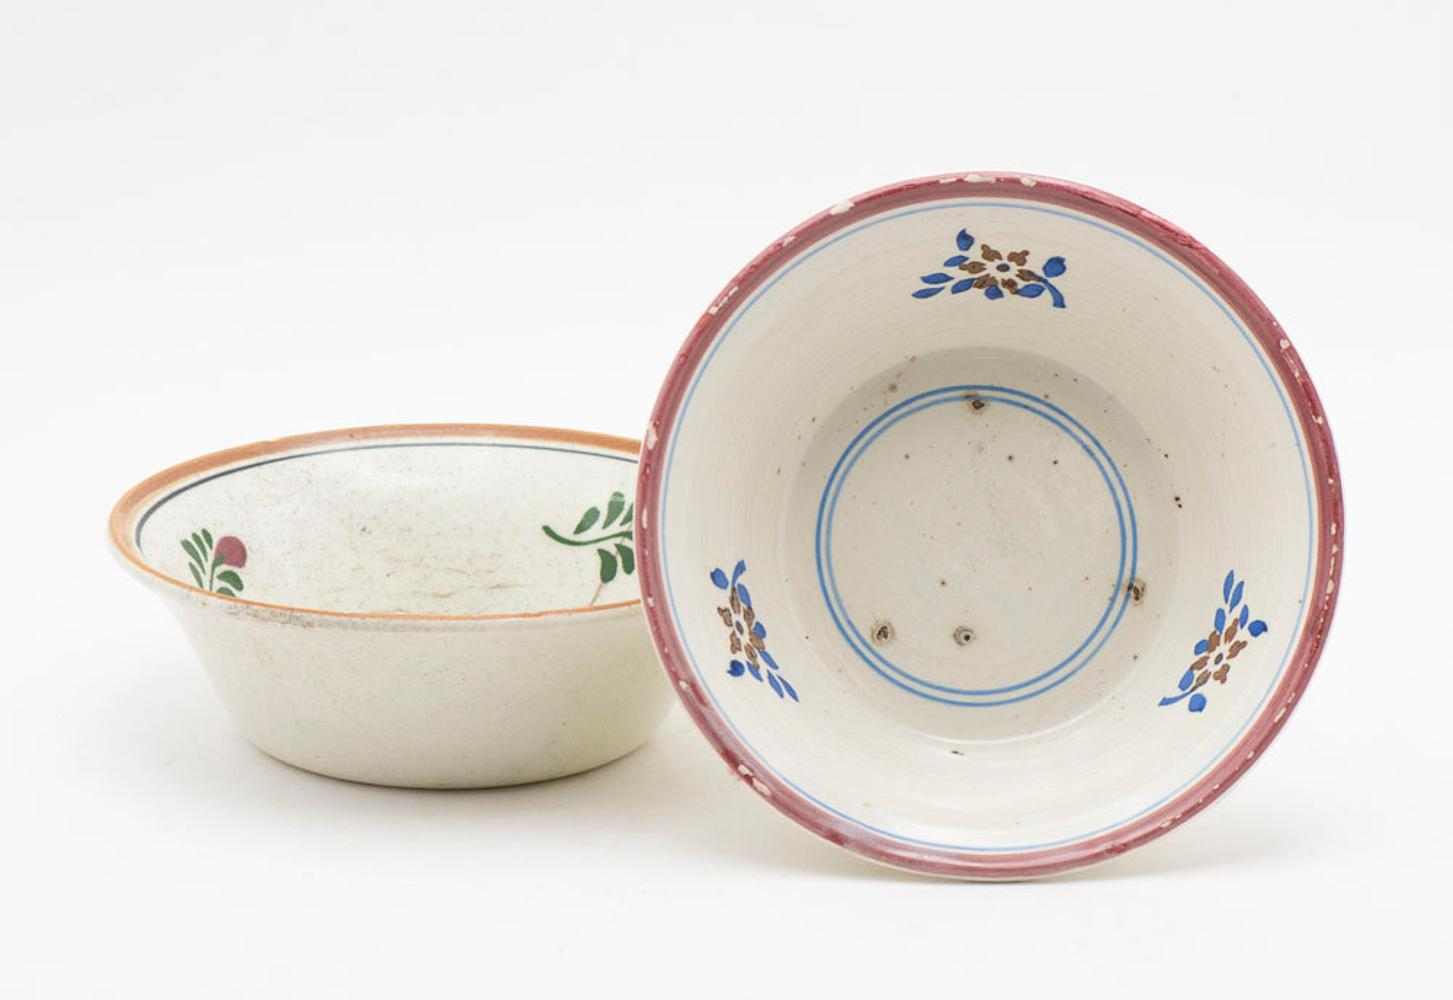 Lot of 4 faience bowls